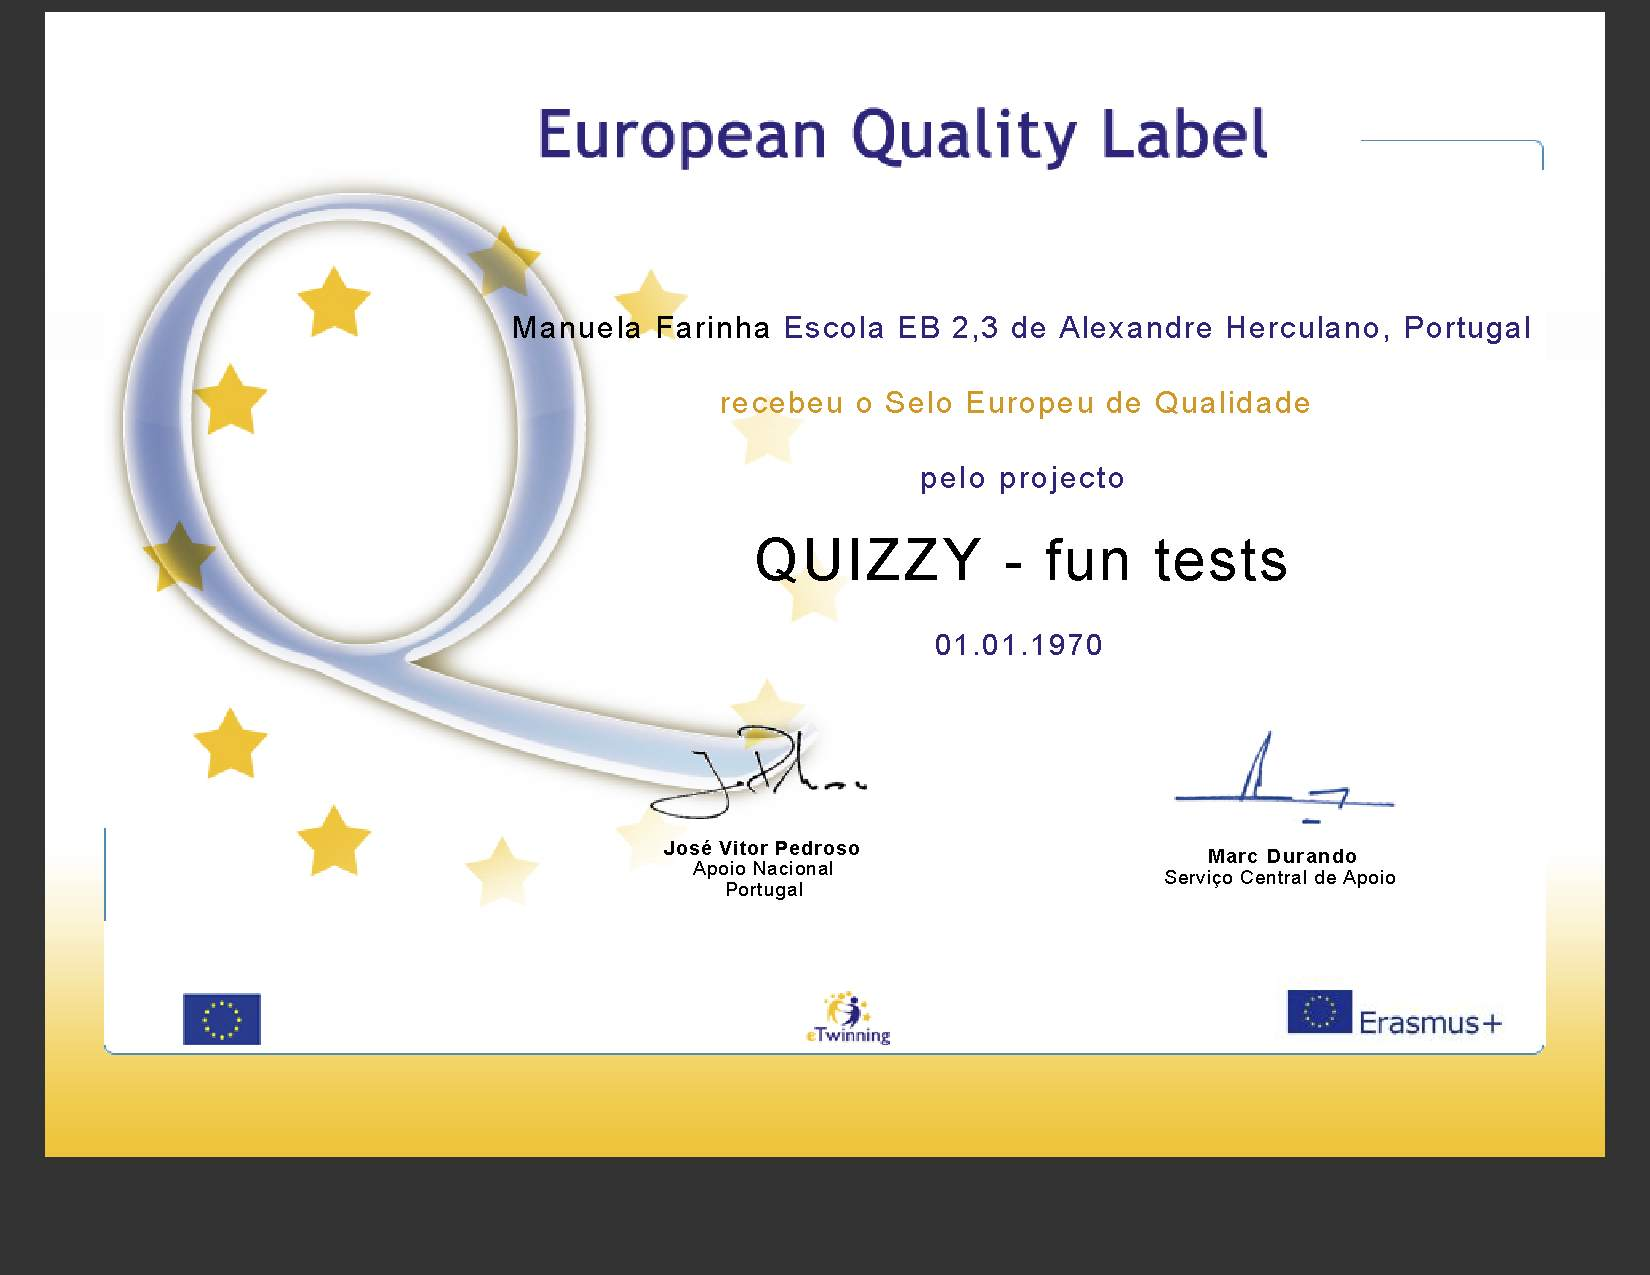 etw_europeanqualitylabel_78863_pt